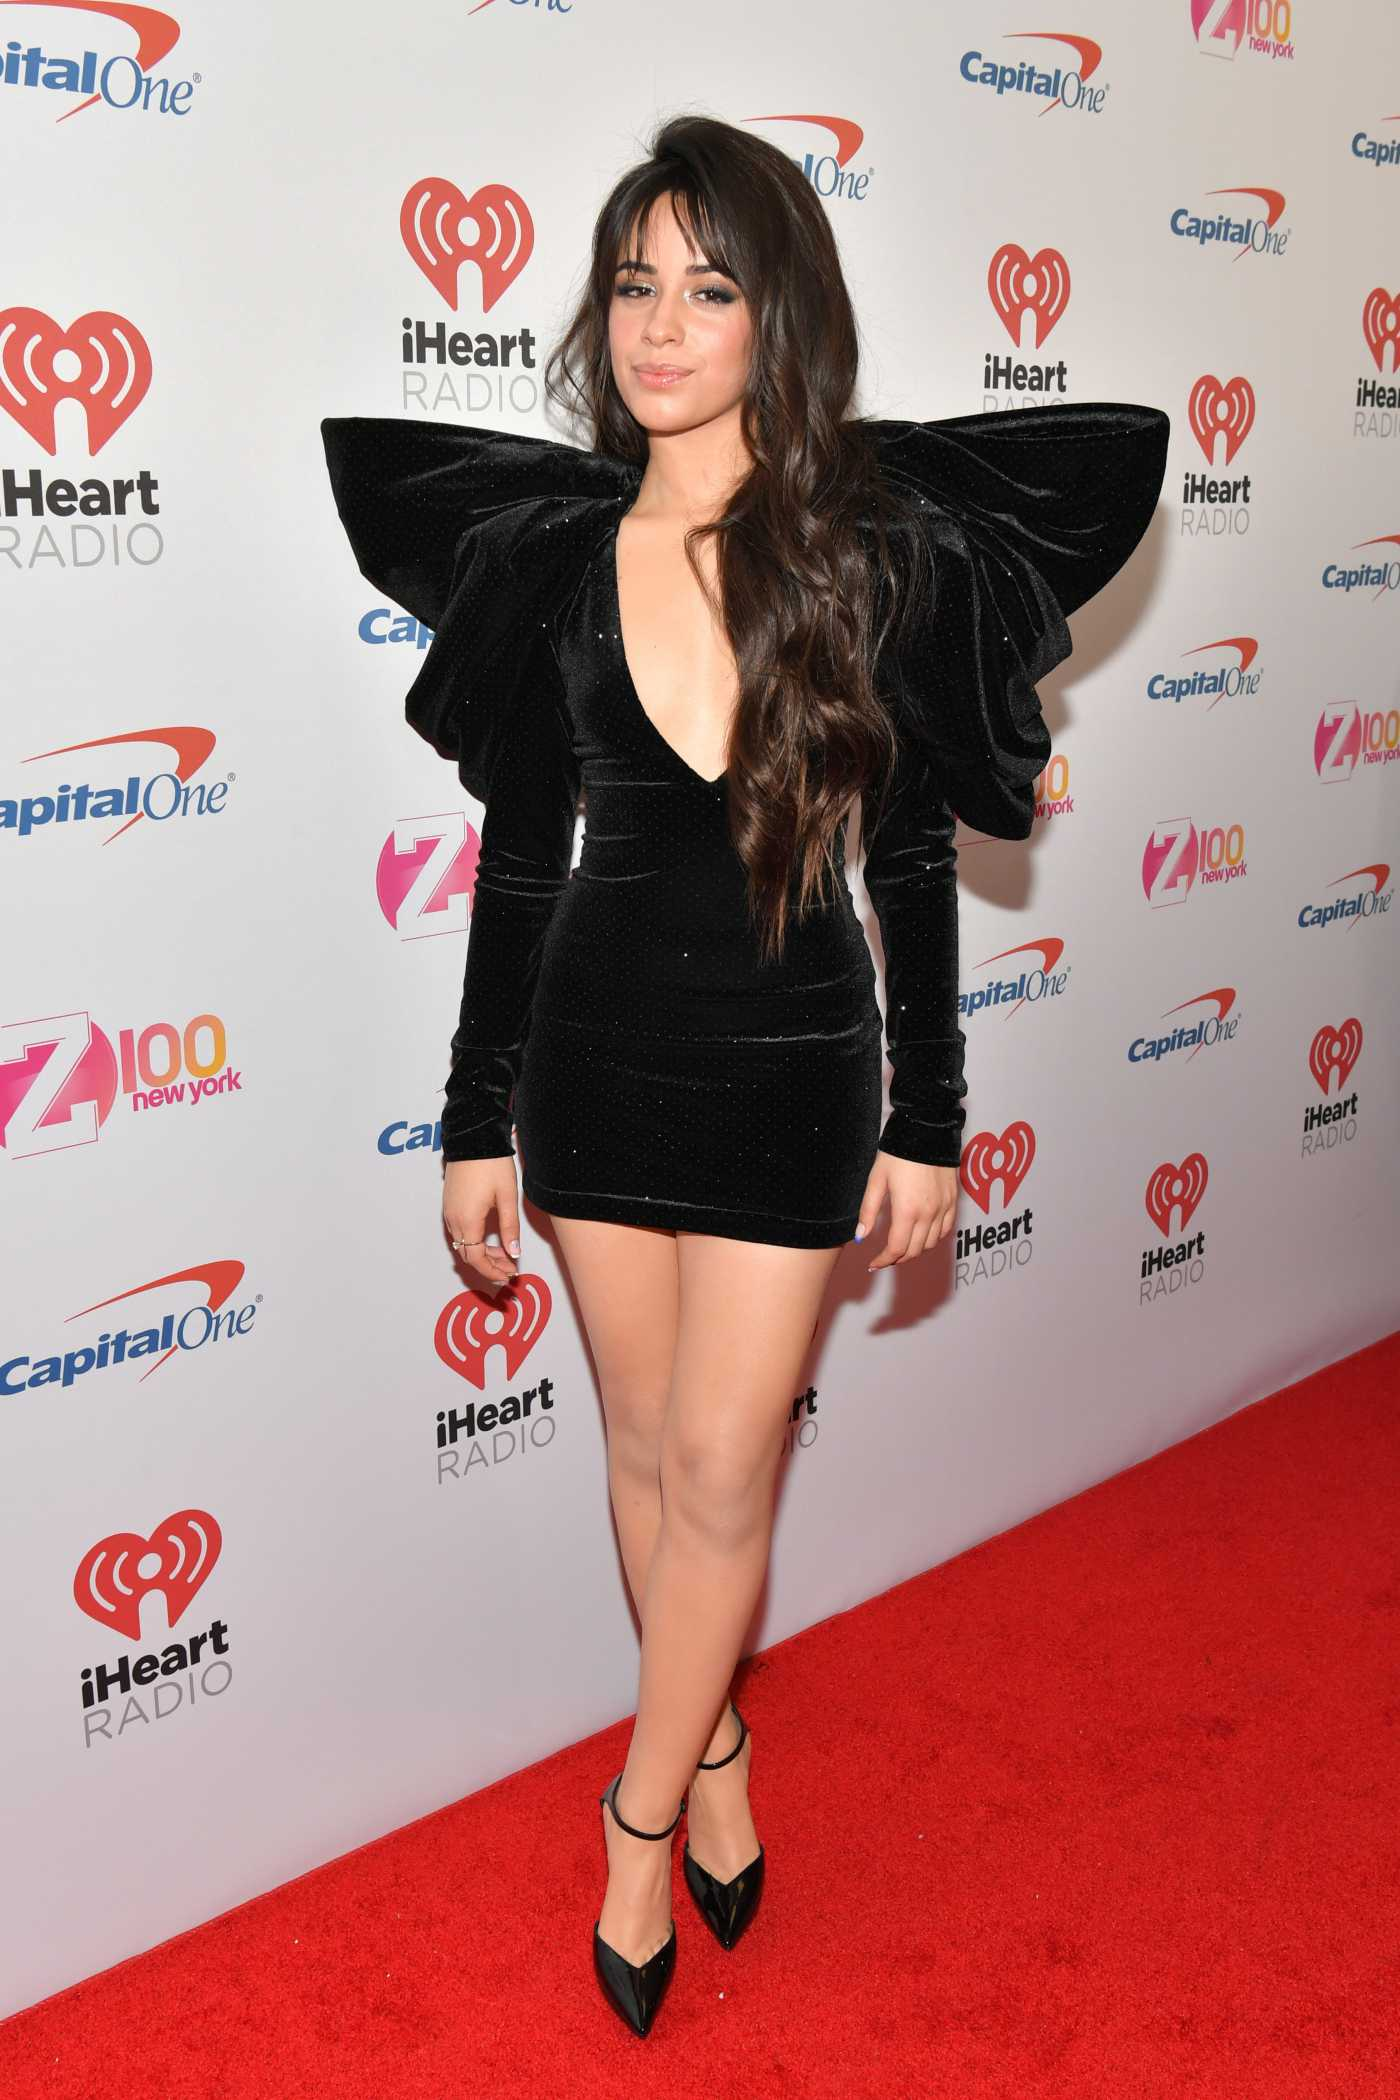 Camila Cabello Attends 2019 iHeartRadio's Z100 Jingle Ball at Madison Square Garden in New York City 12/13/2019